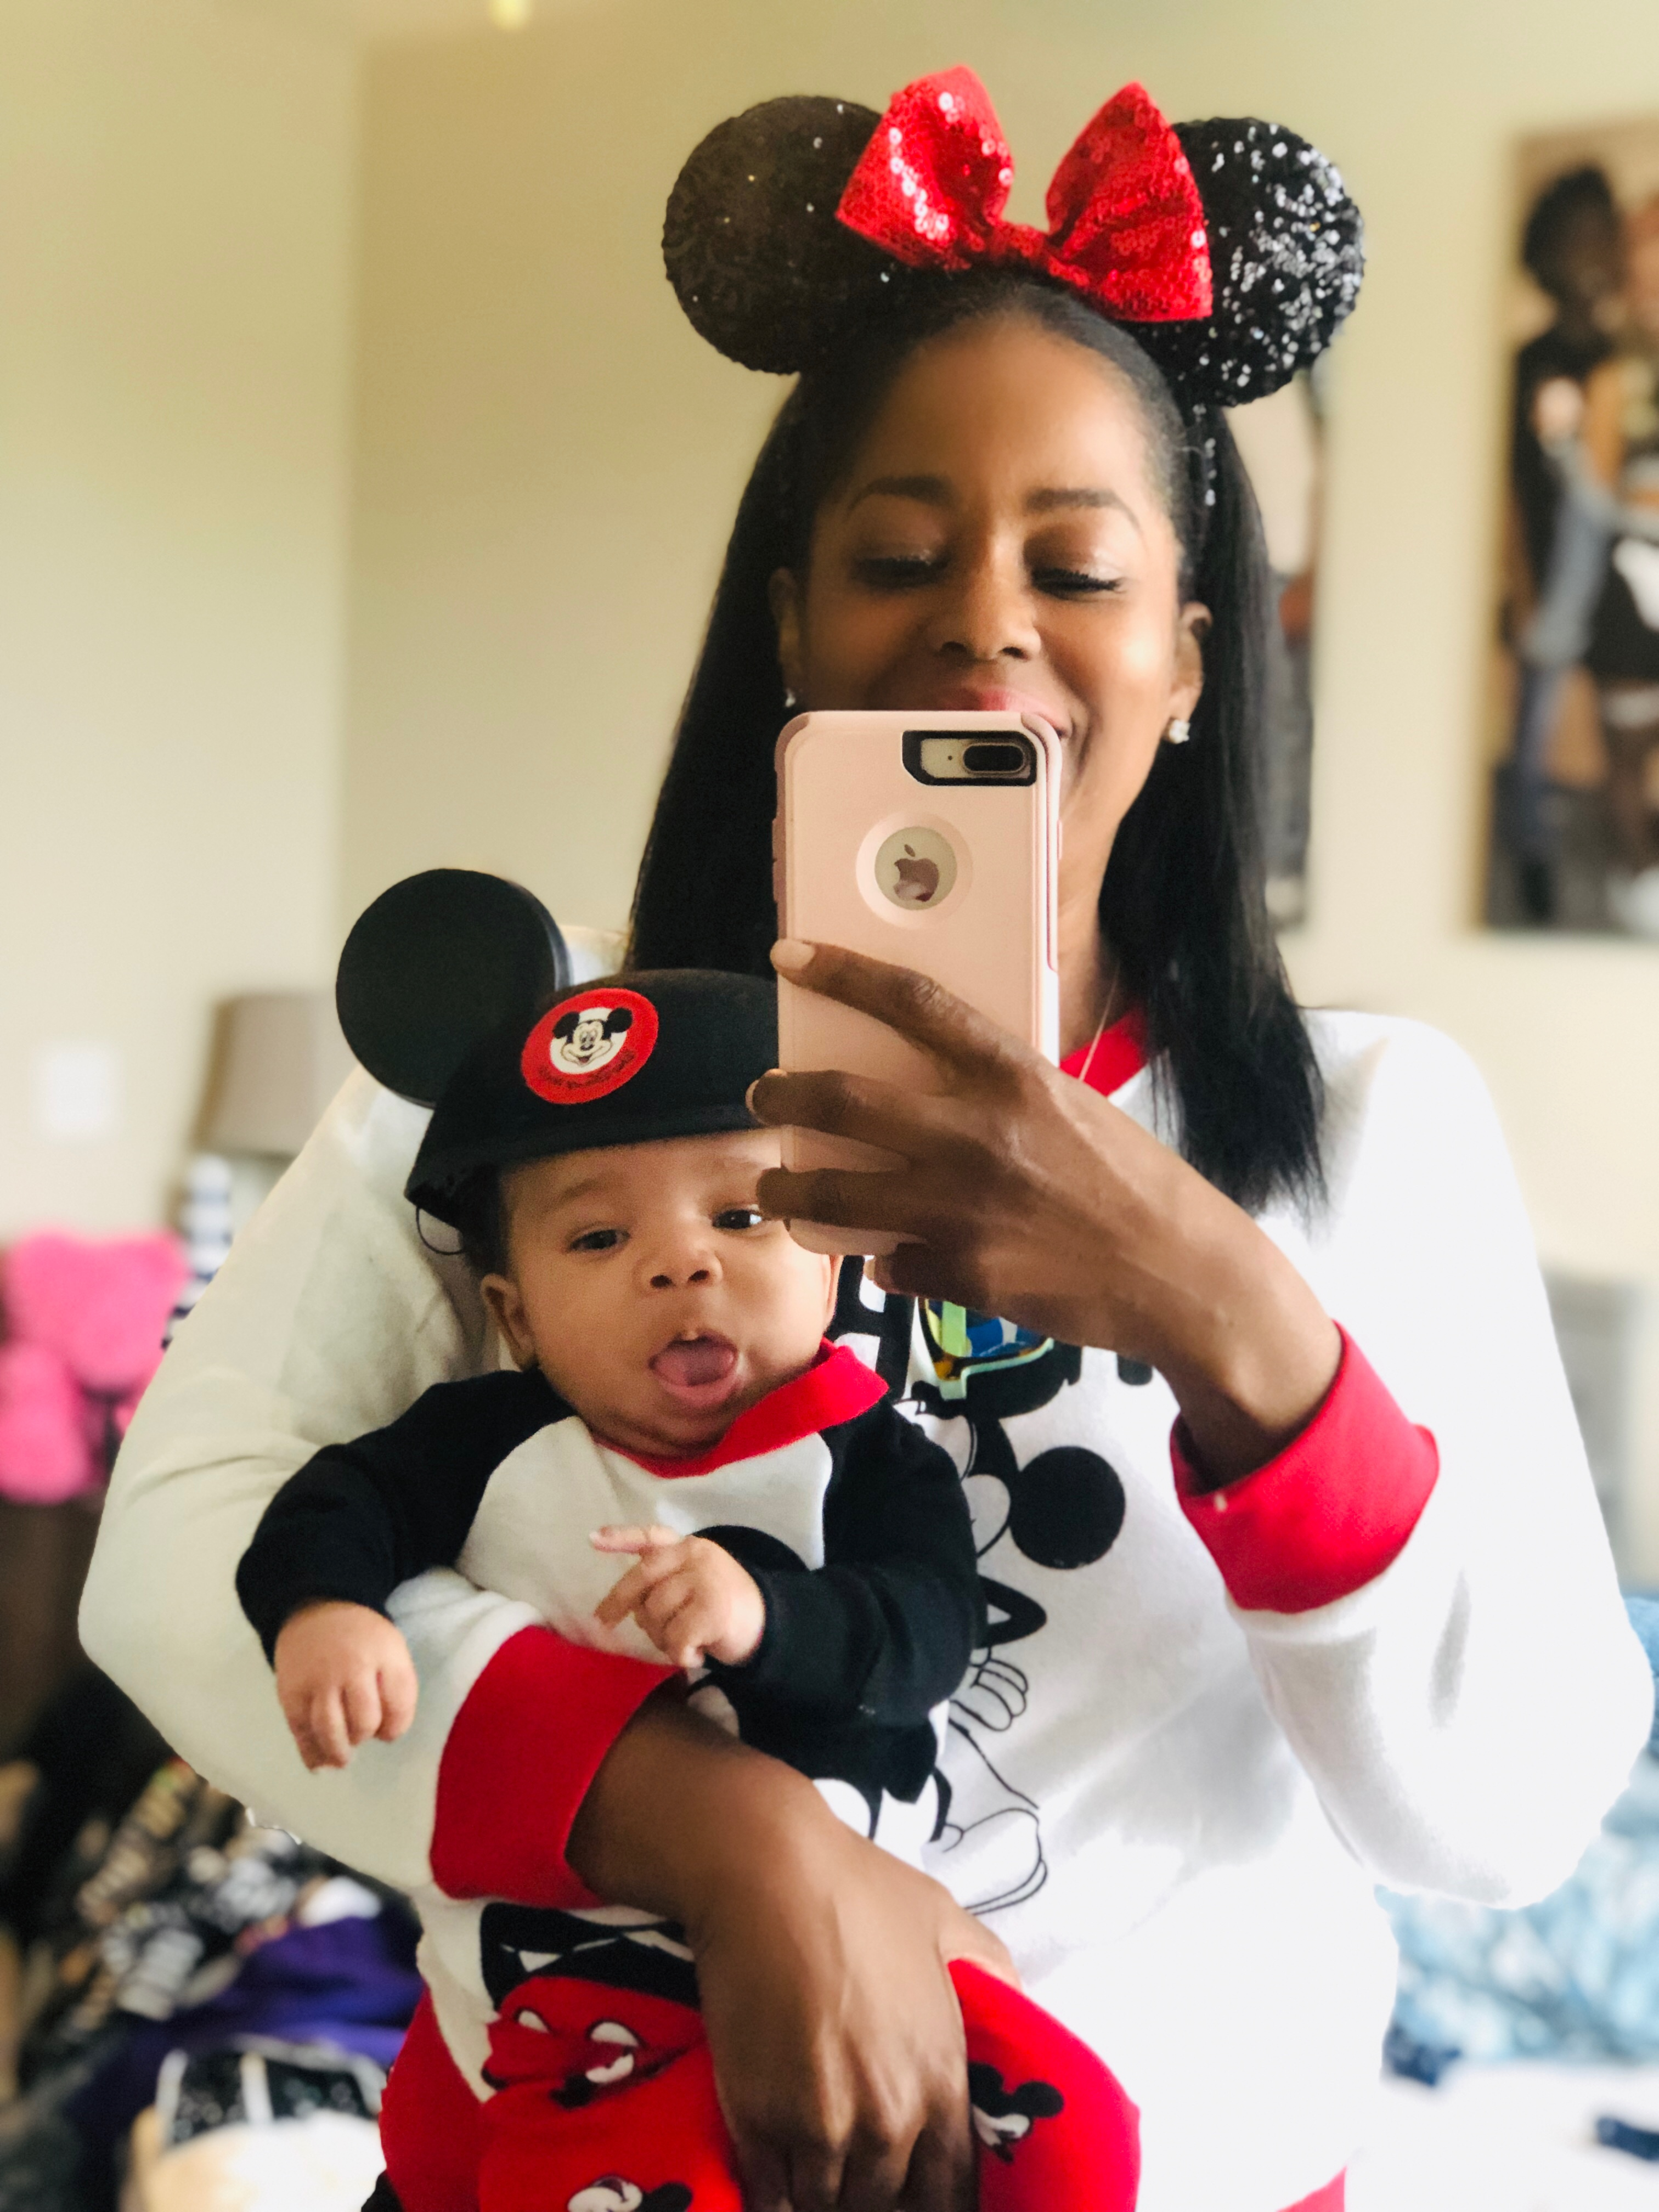 My Families Experience At Disney On Ice In Atlanta